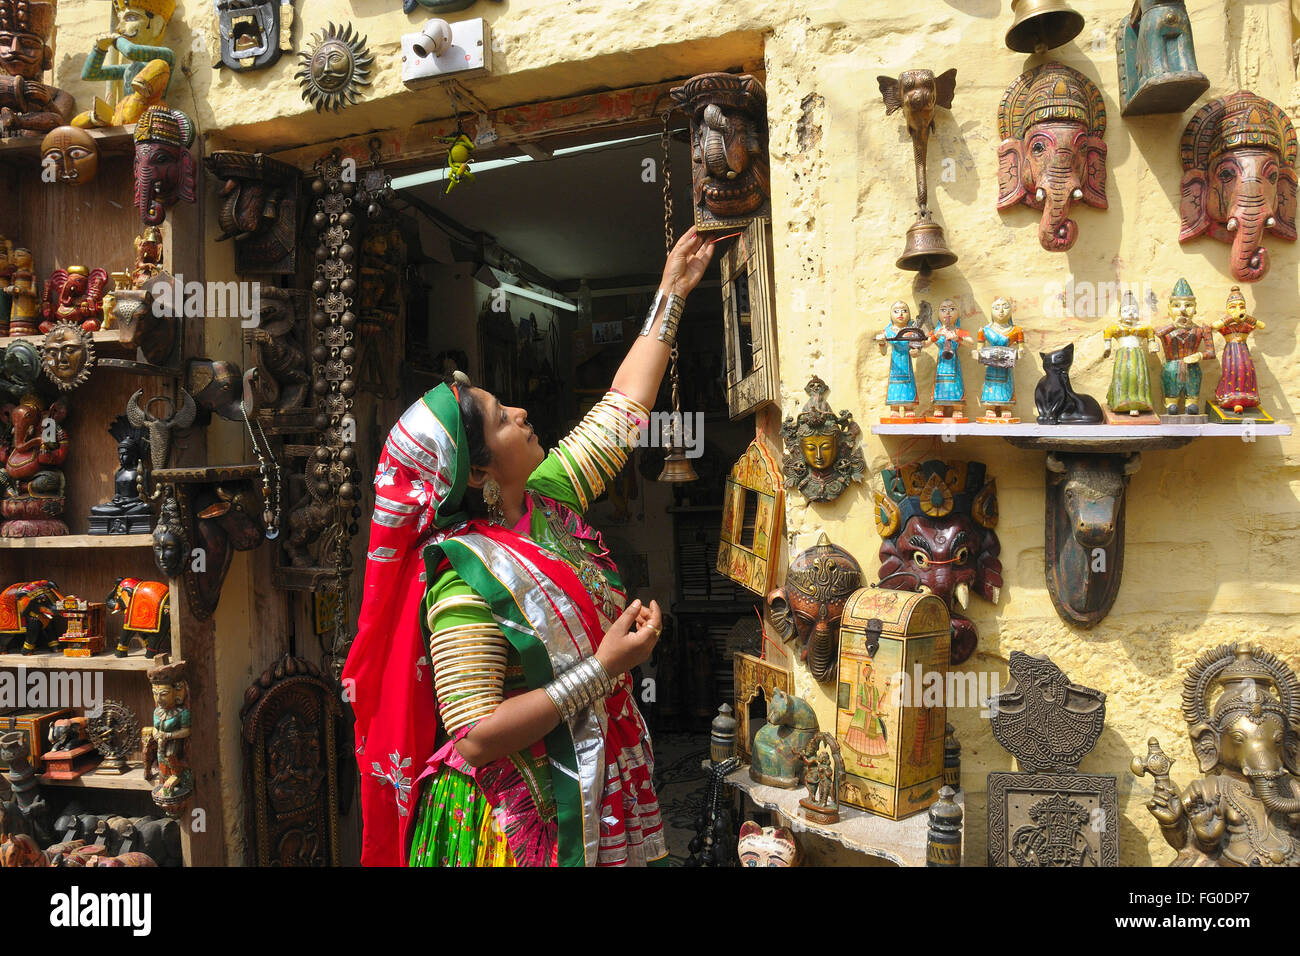 Lady In Colourful Traditional Dress Looking At Handicraft Items